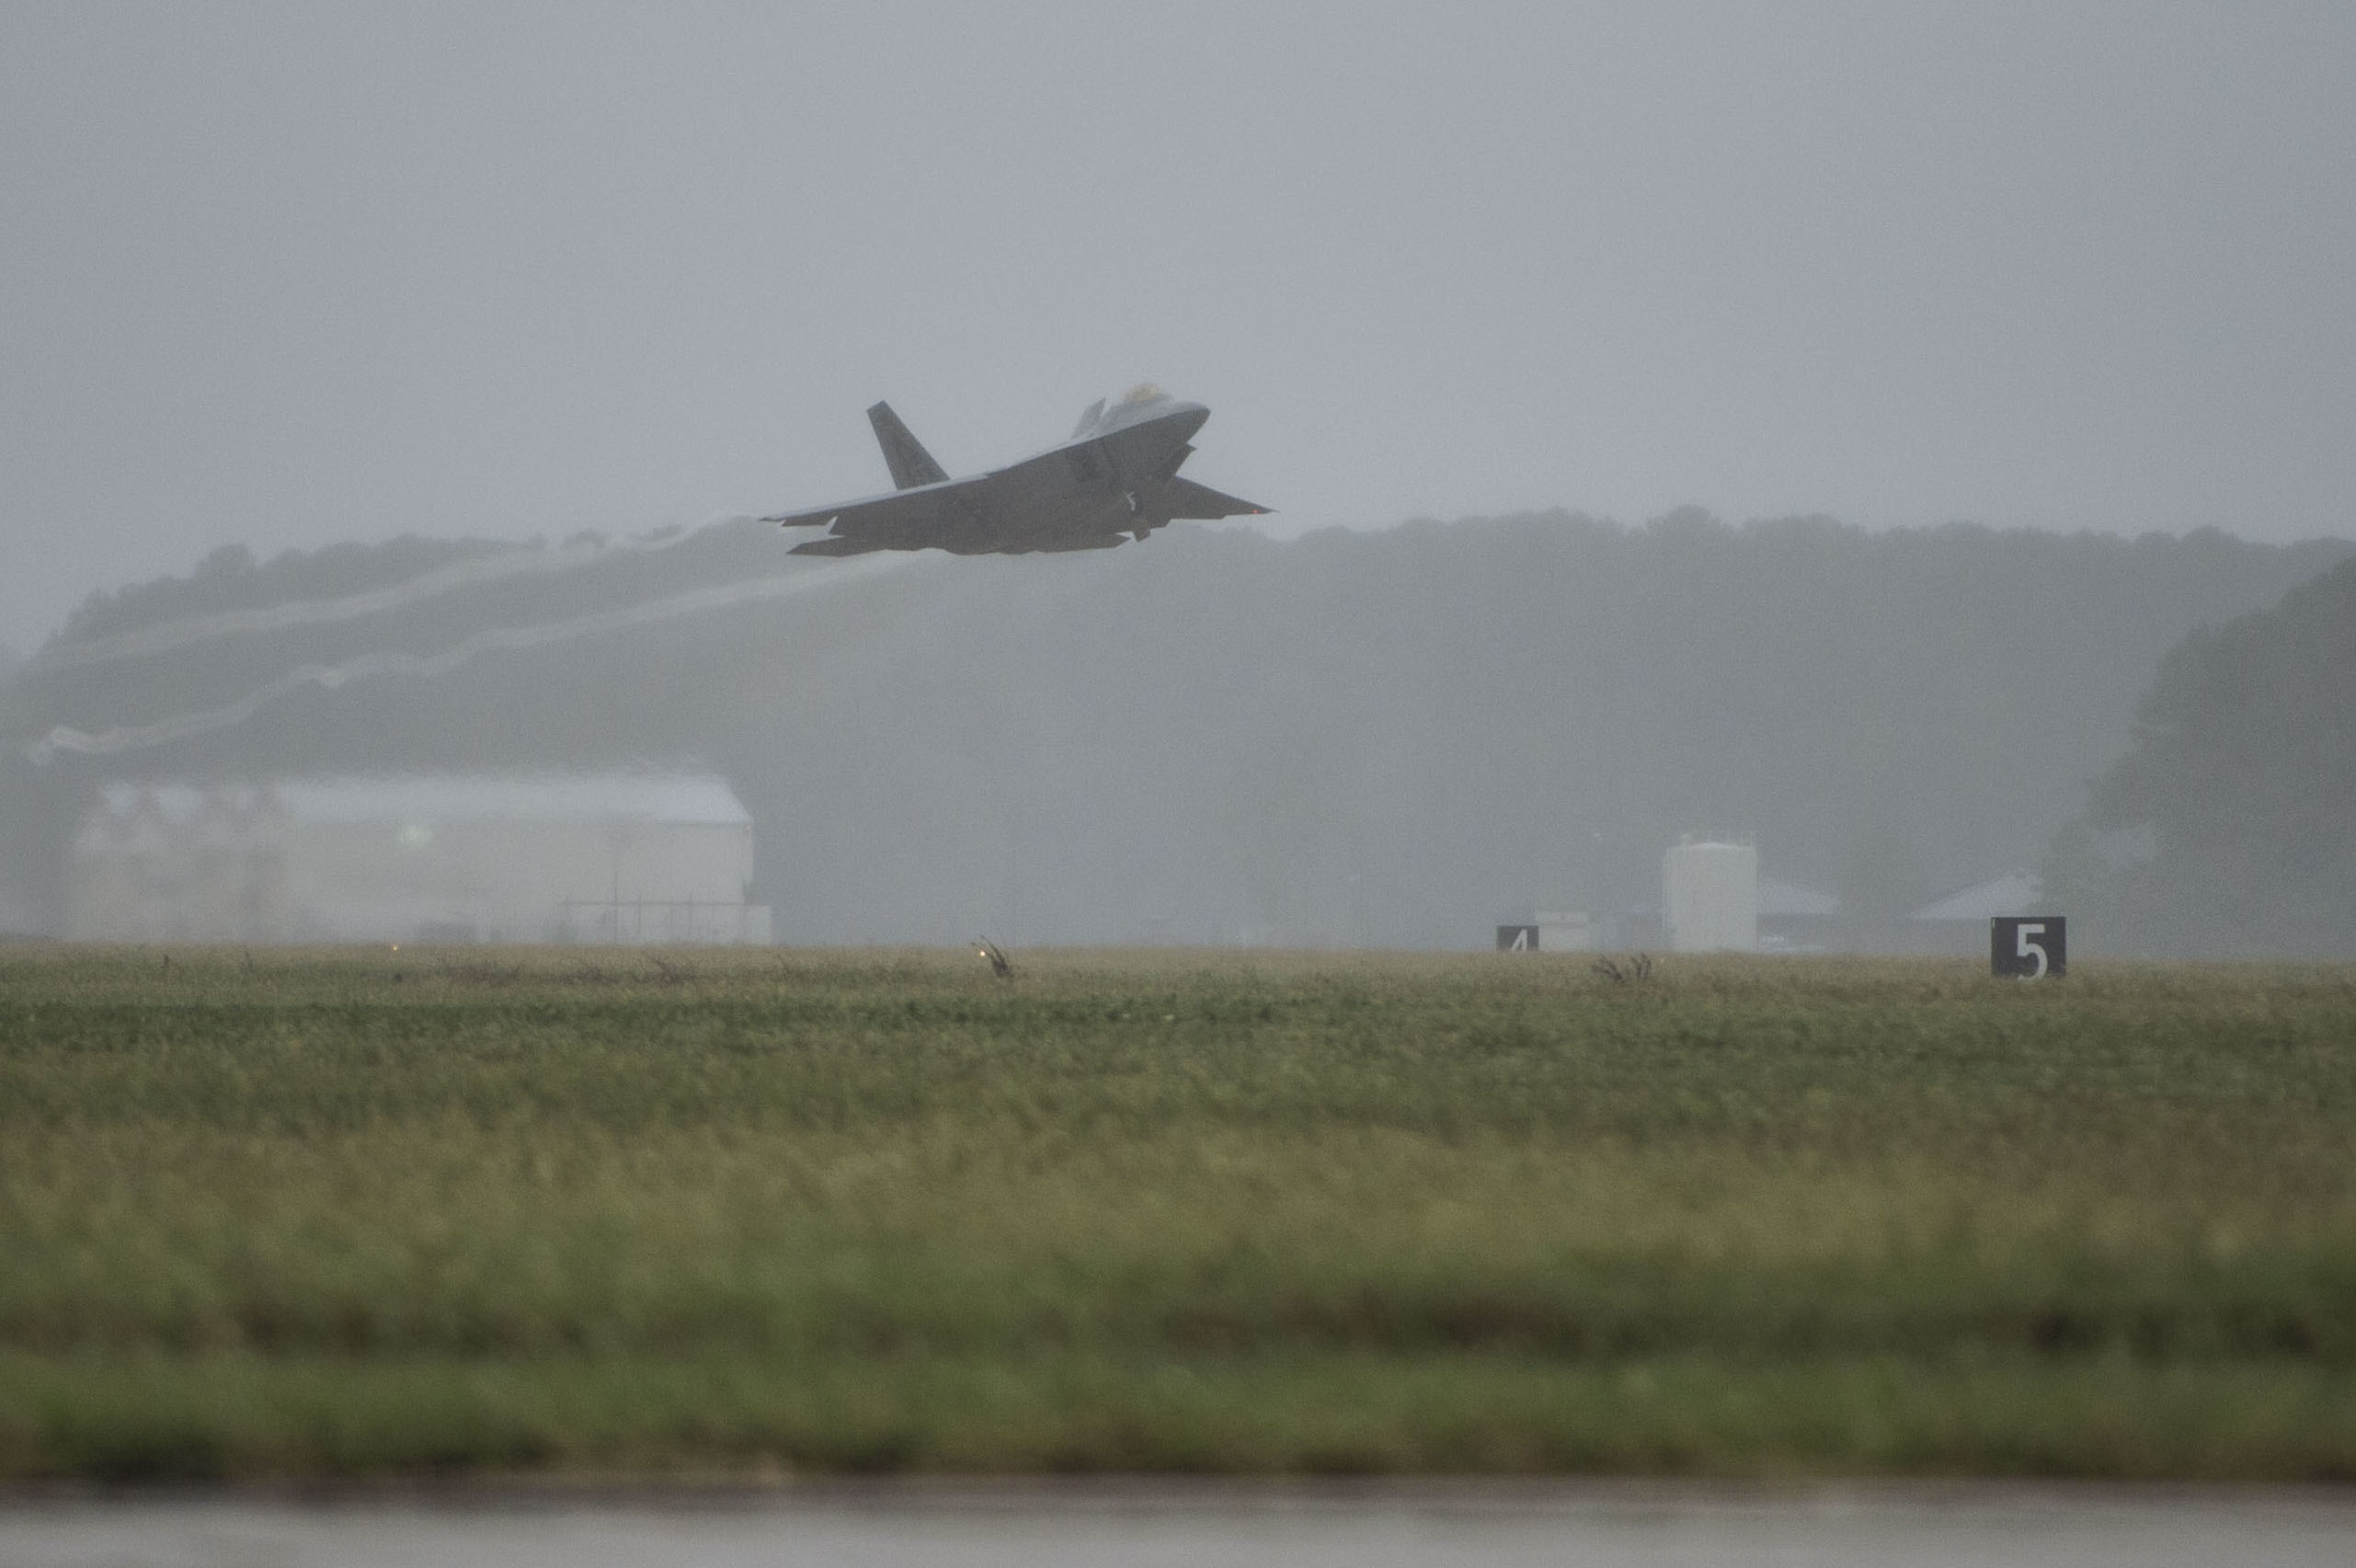 An F-22 Raptor takes off from the runway at Langley Air Force Base, Va., Oct. 1, 2015. As a result of Hurricane Joaquin, Joint Base Langley-Eustis is expected to receive heavy precipitation, high winds, storm surges and flooding. (U.S. Air Force photo by Senior Airman Kayla Newman/Released)